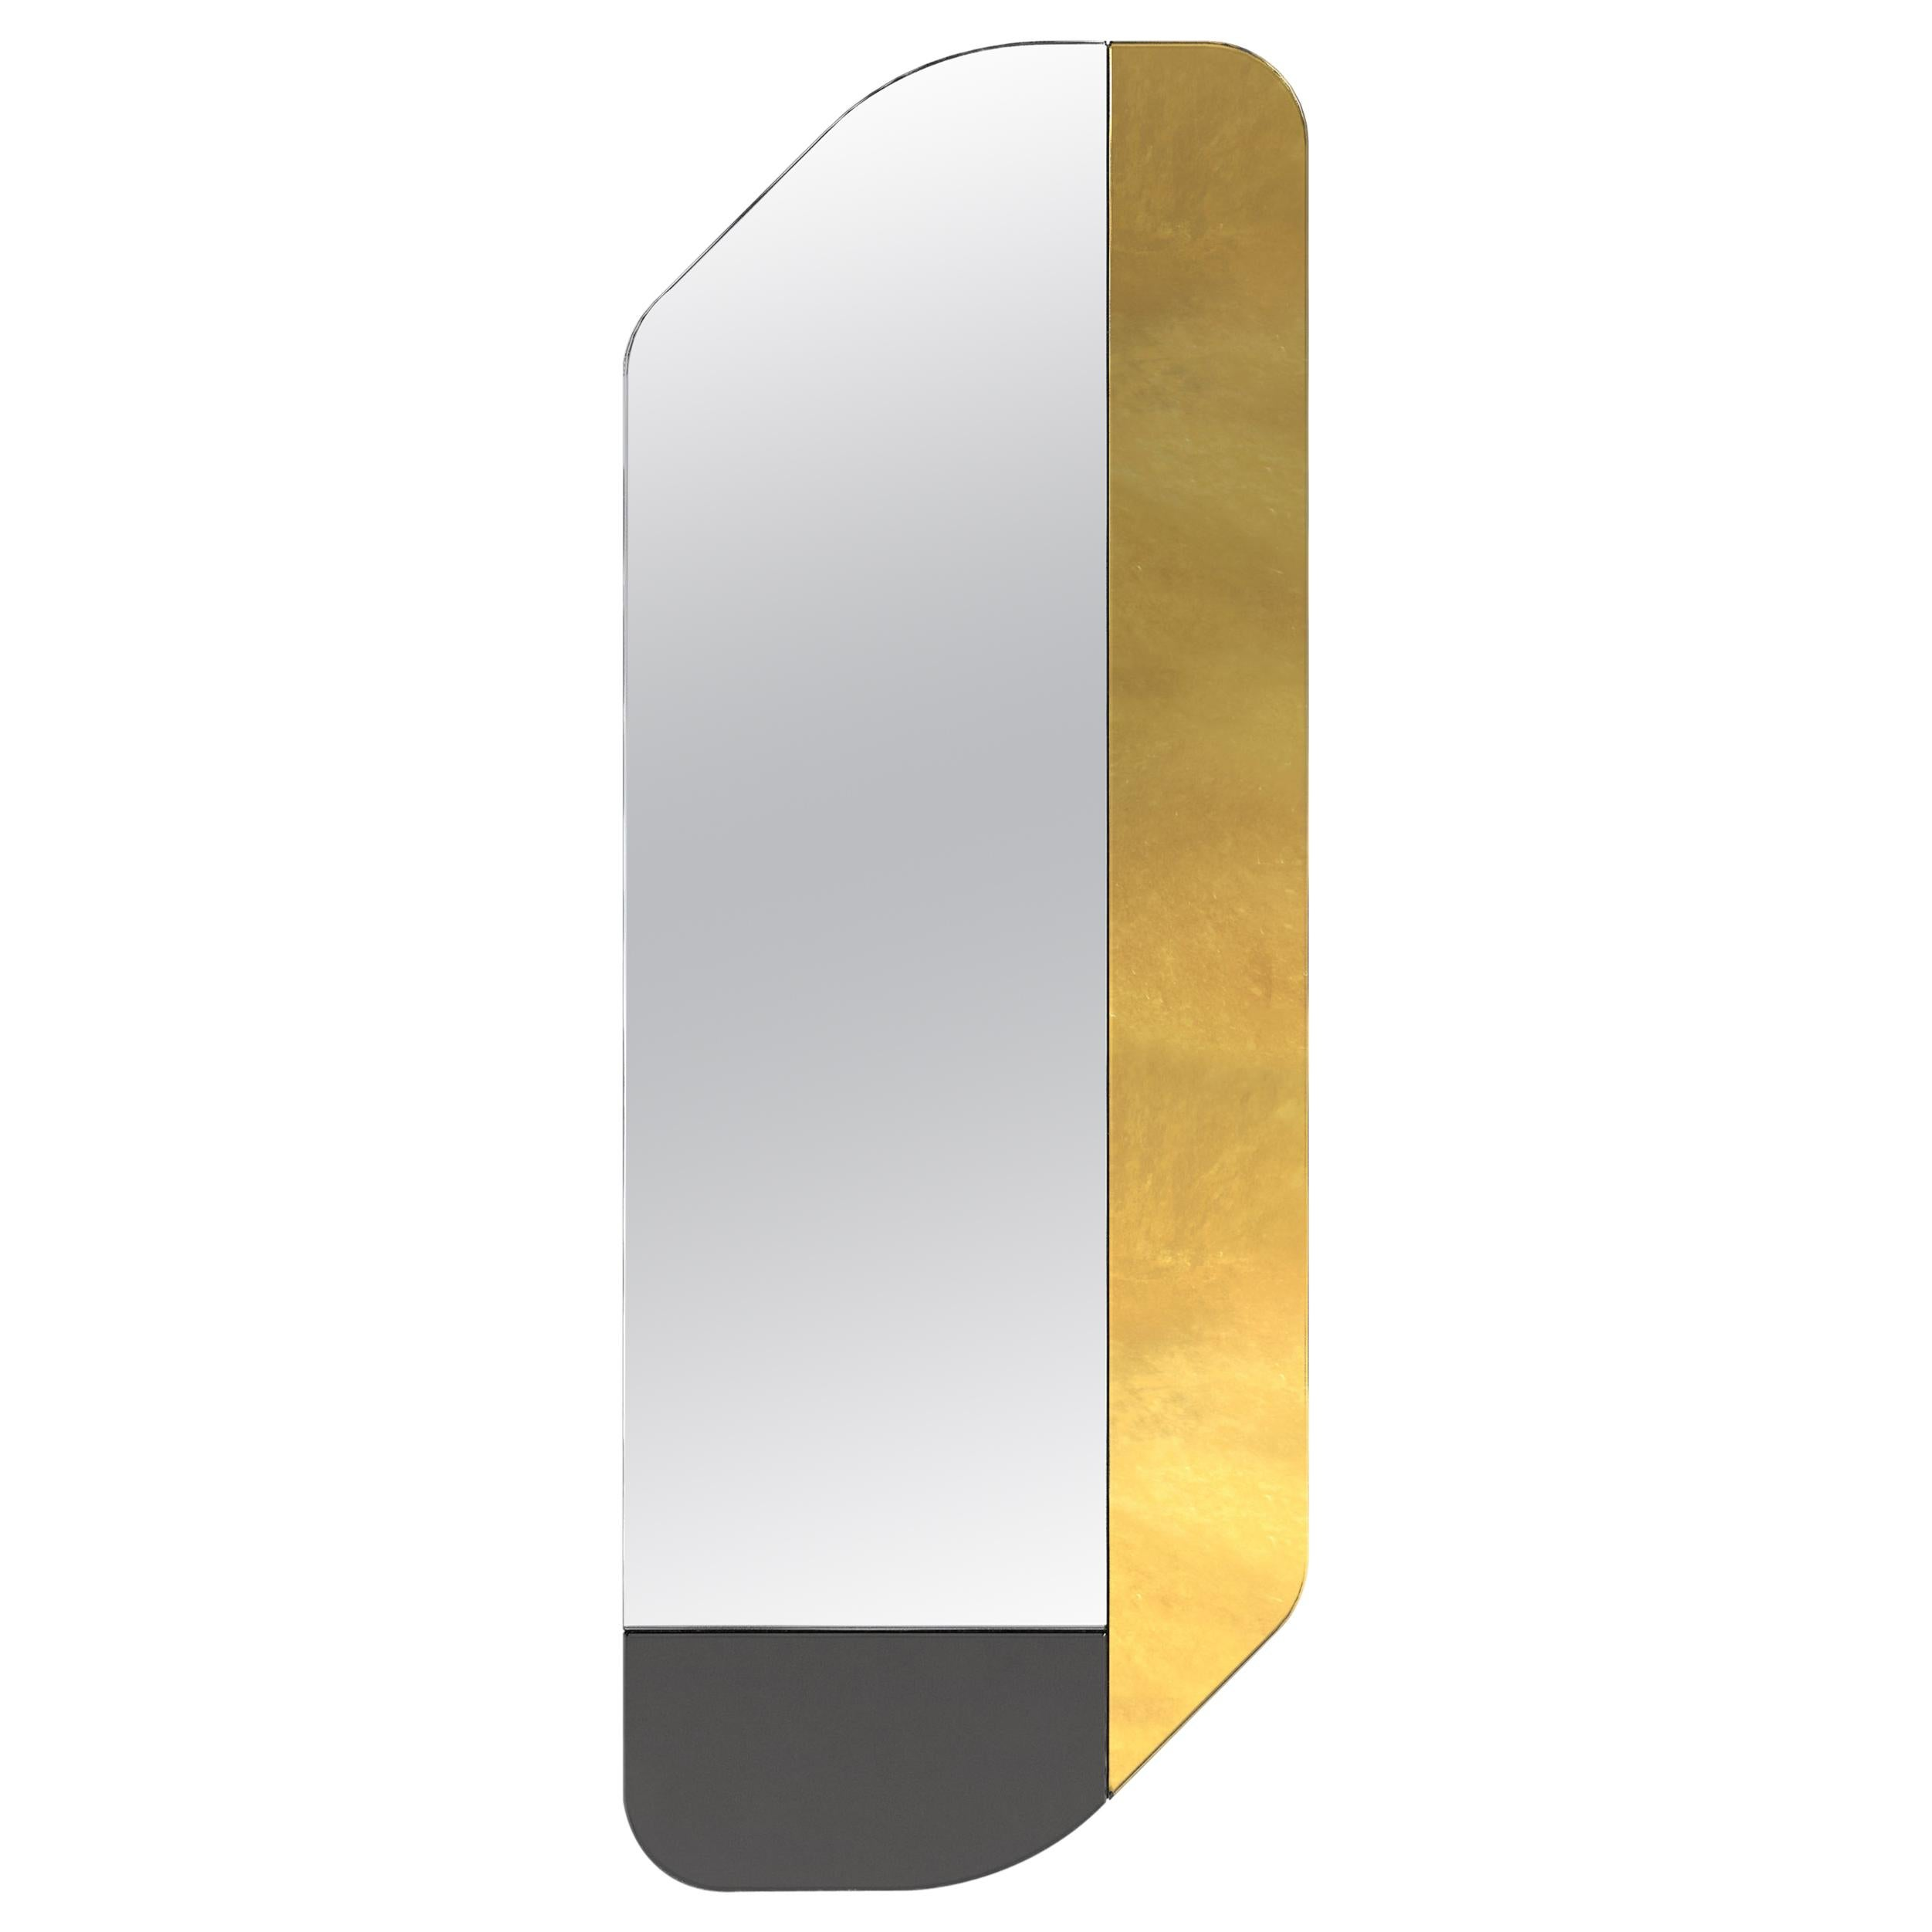 Gold and Black WG.C1.D Hand-Crafted Wall Mirror